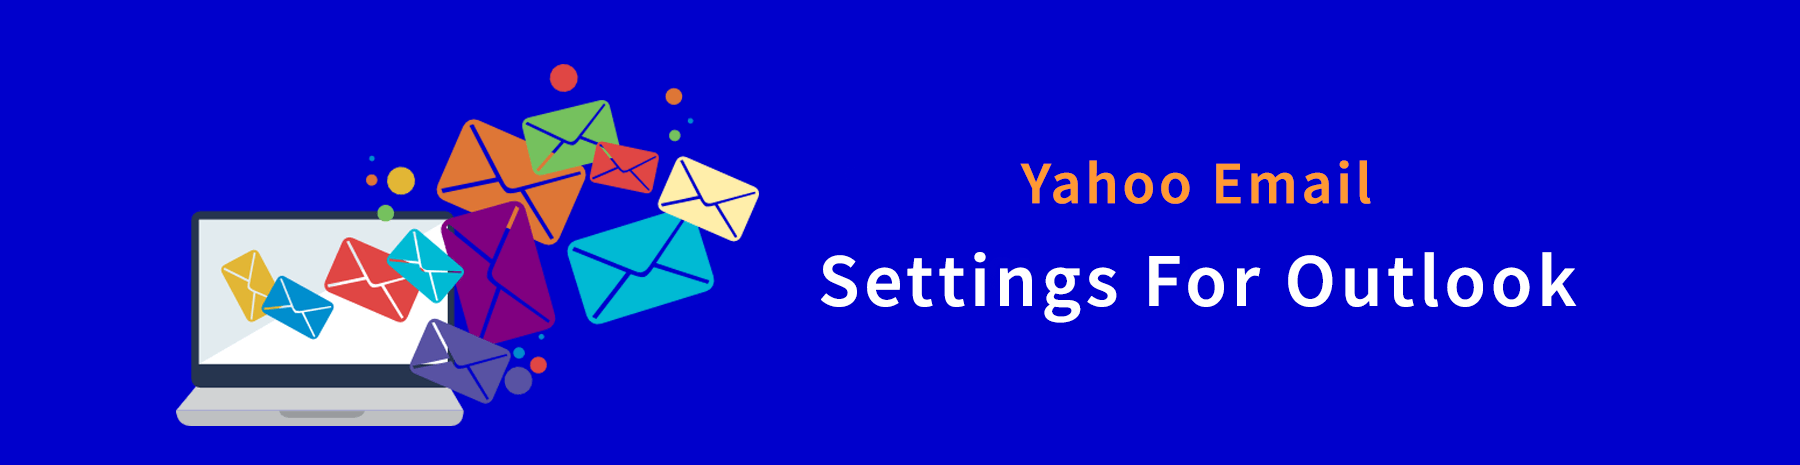 Yahoo-Mail-Outlook-Settings